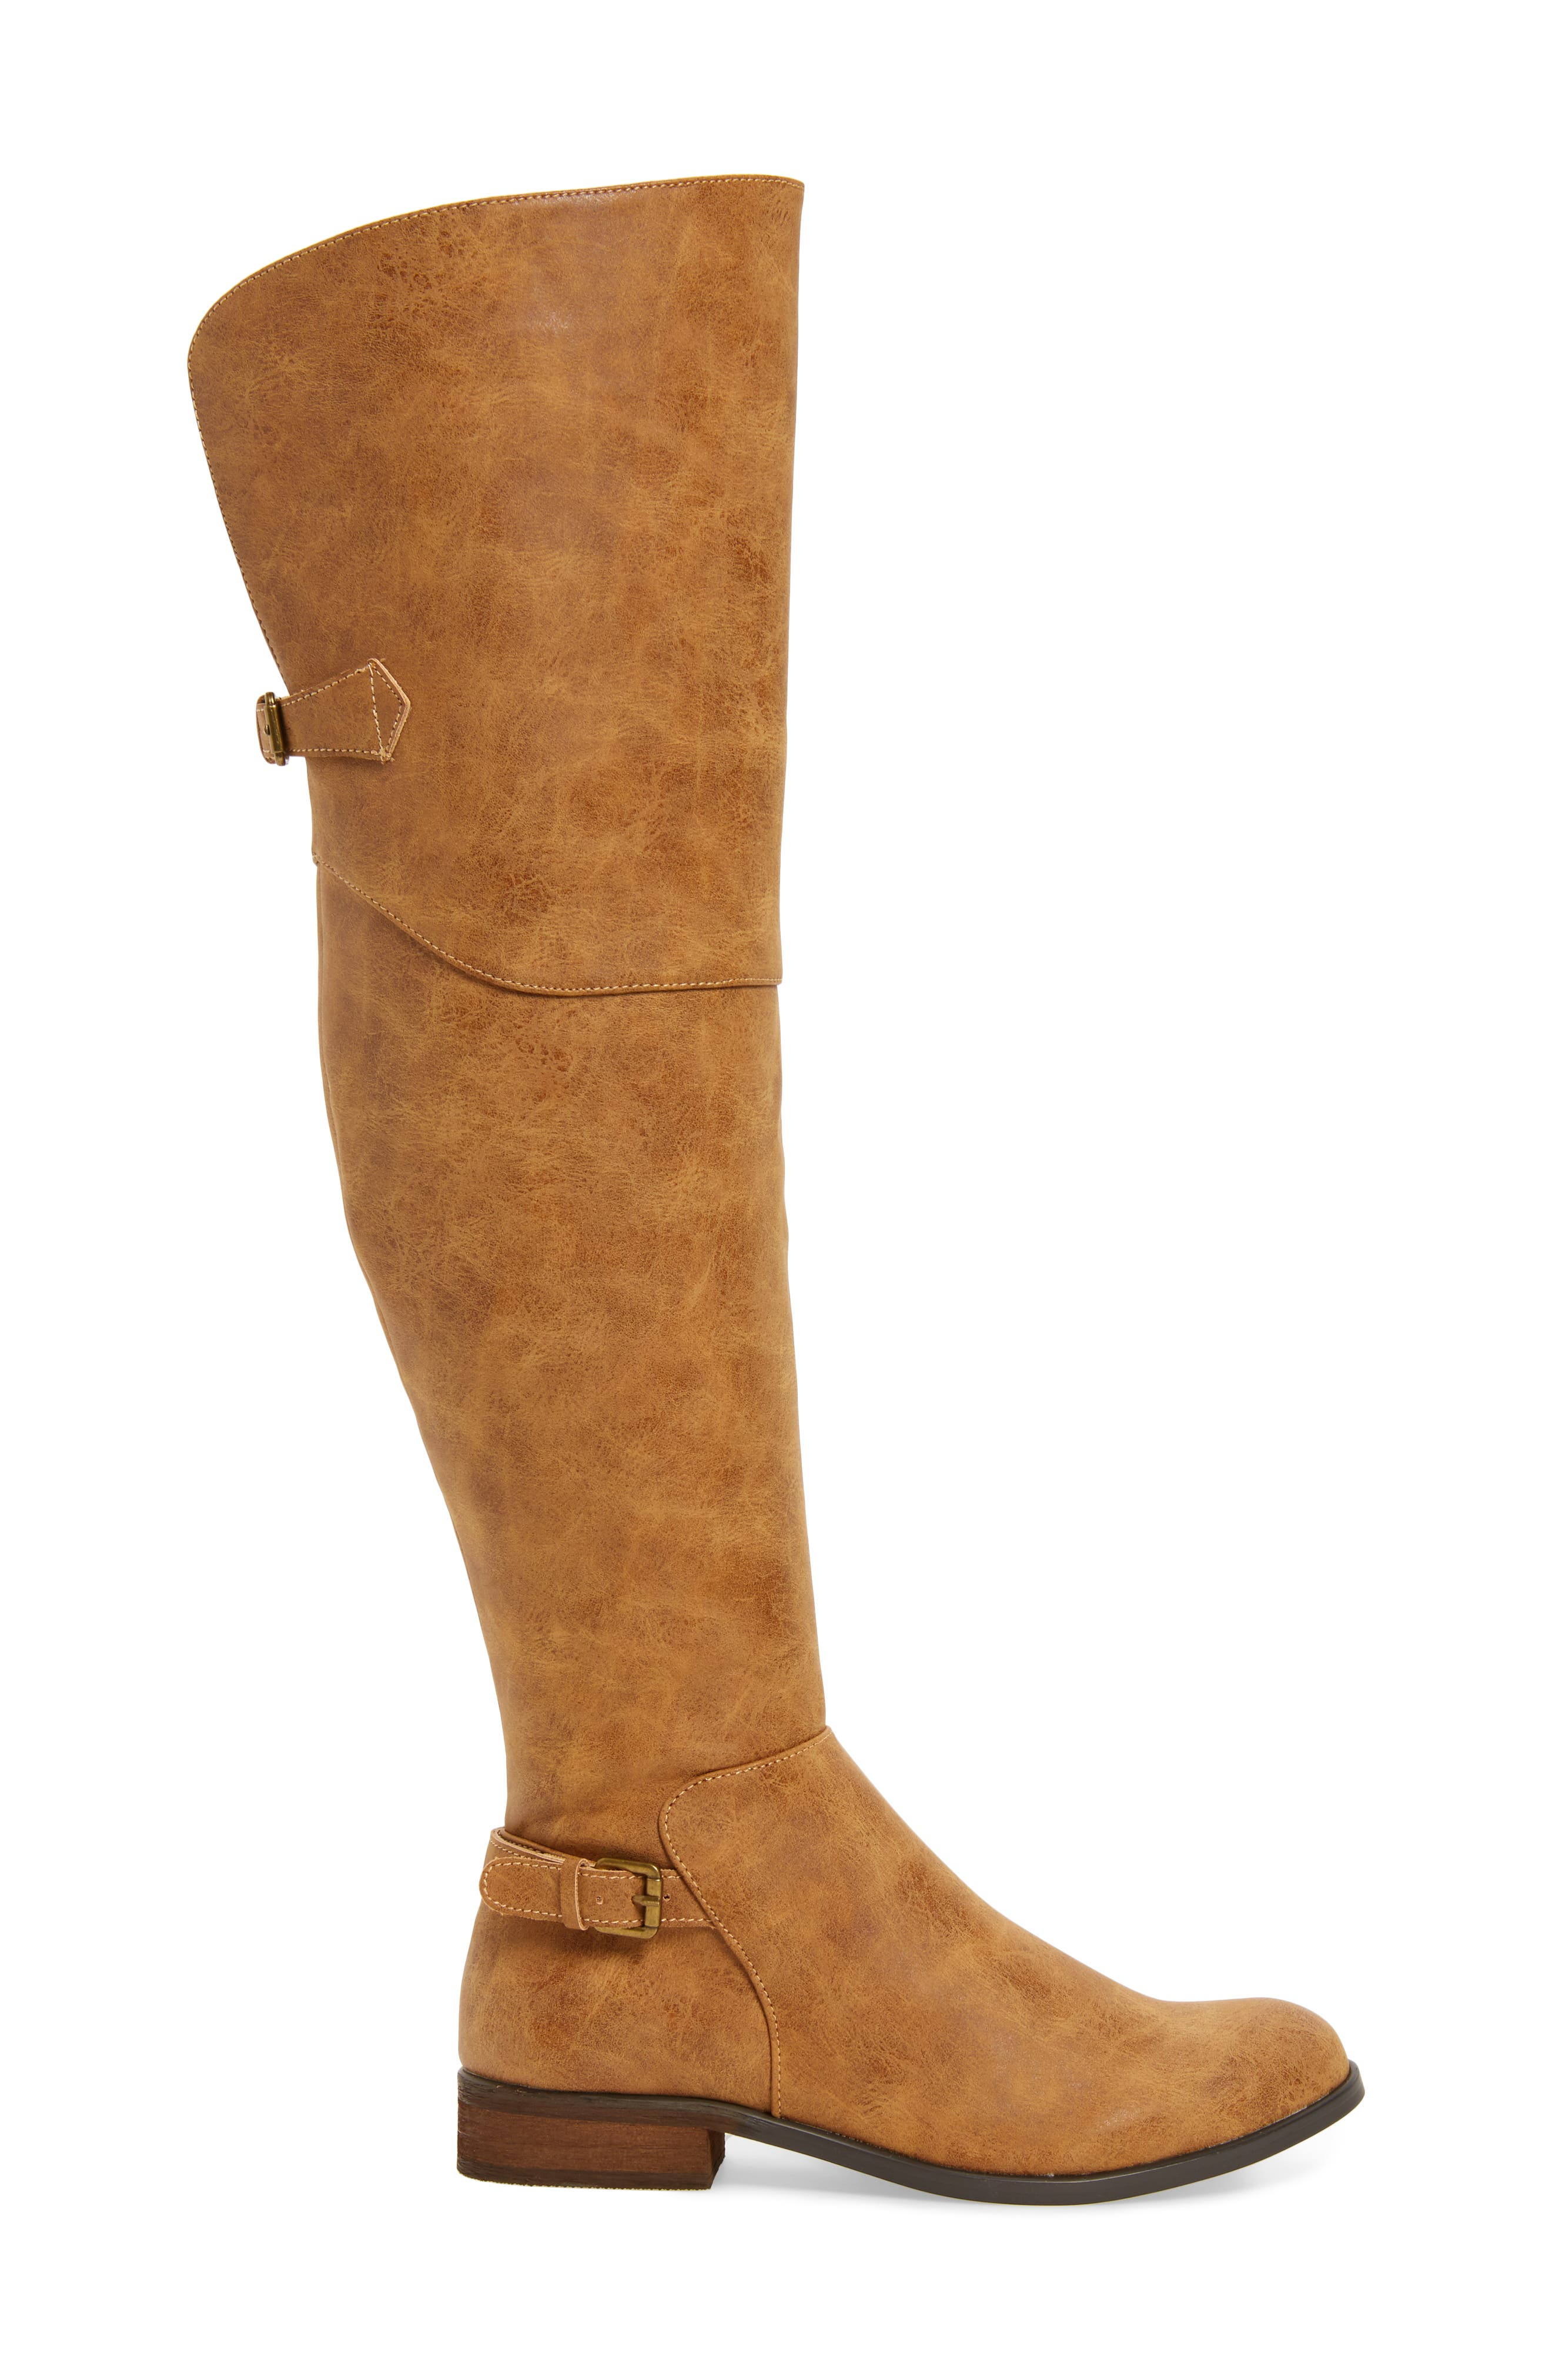 Otto Over the Knee Boot,                             Alternate thumbnail 3, color,                             Tan Faux Leather